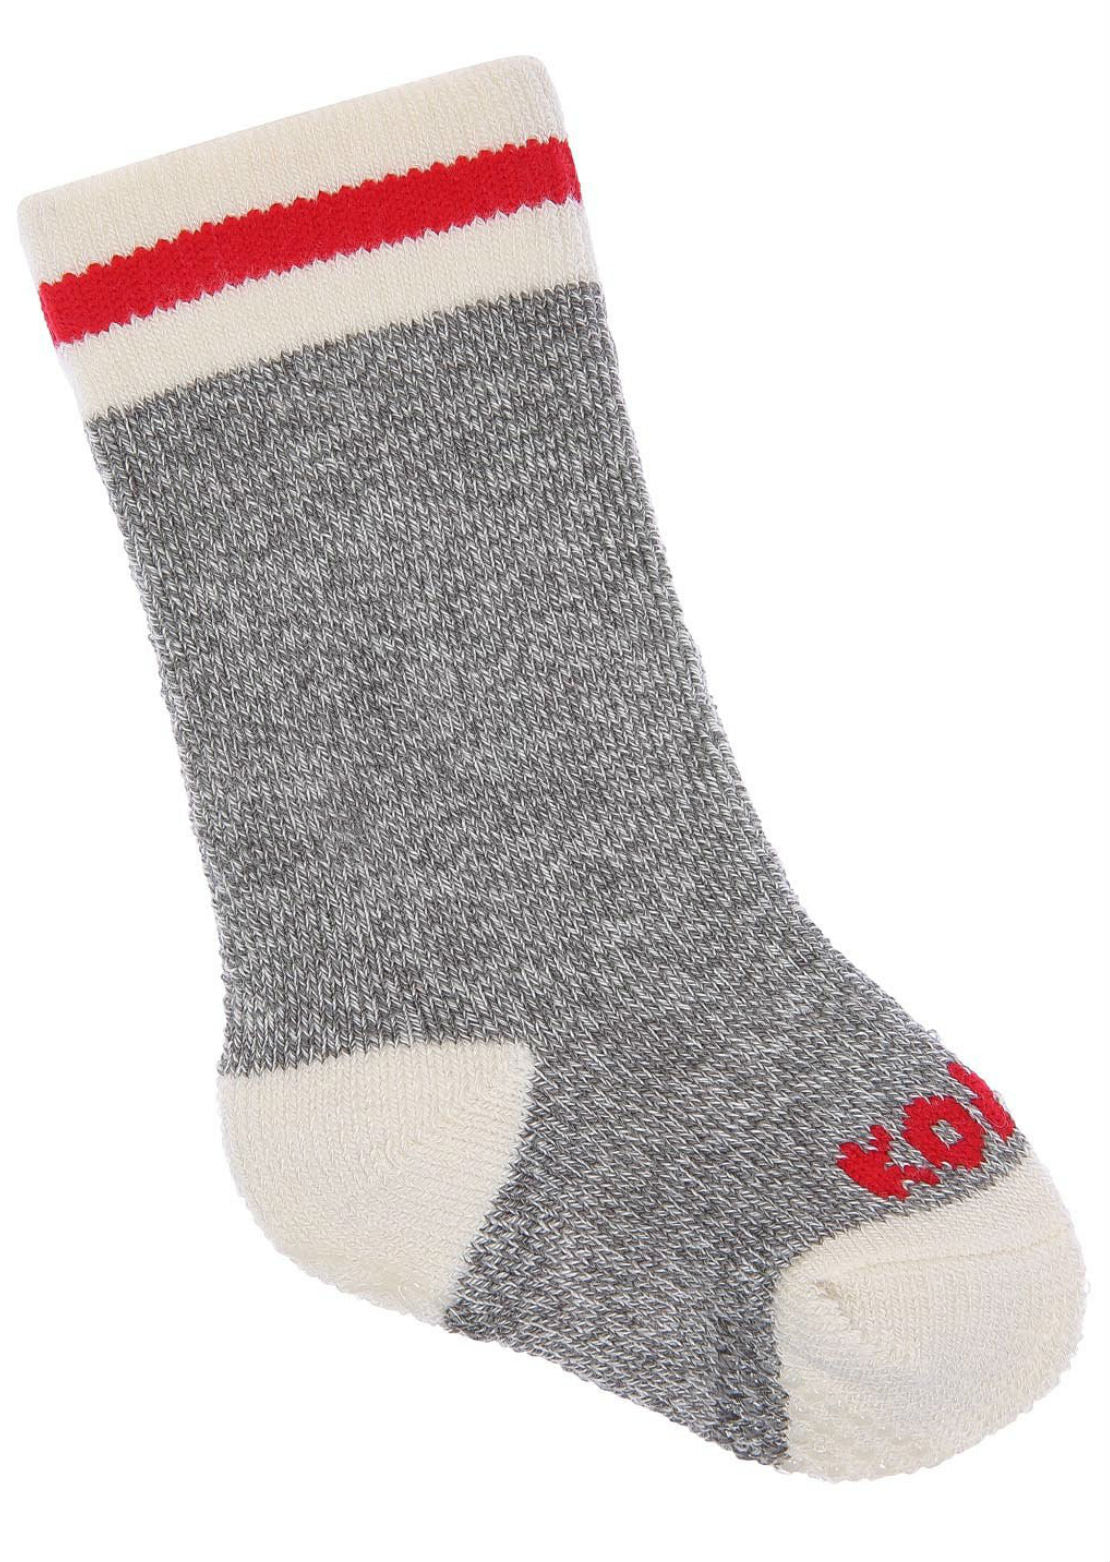 Kombi Junior Infant Baby Camp Sock